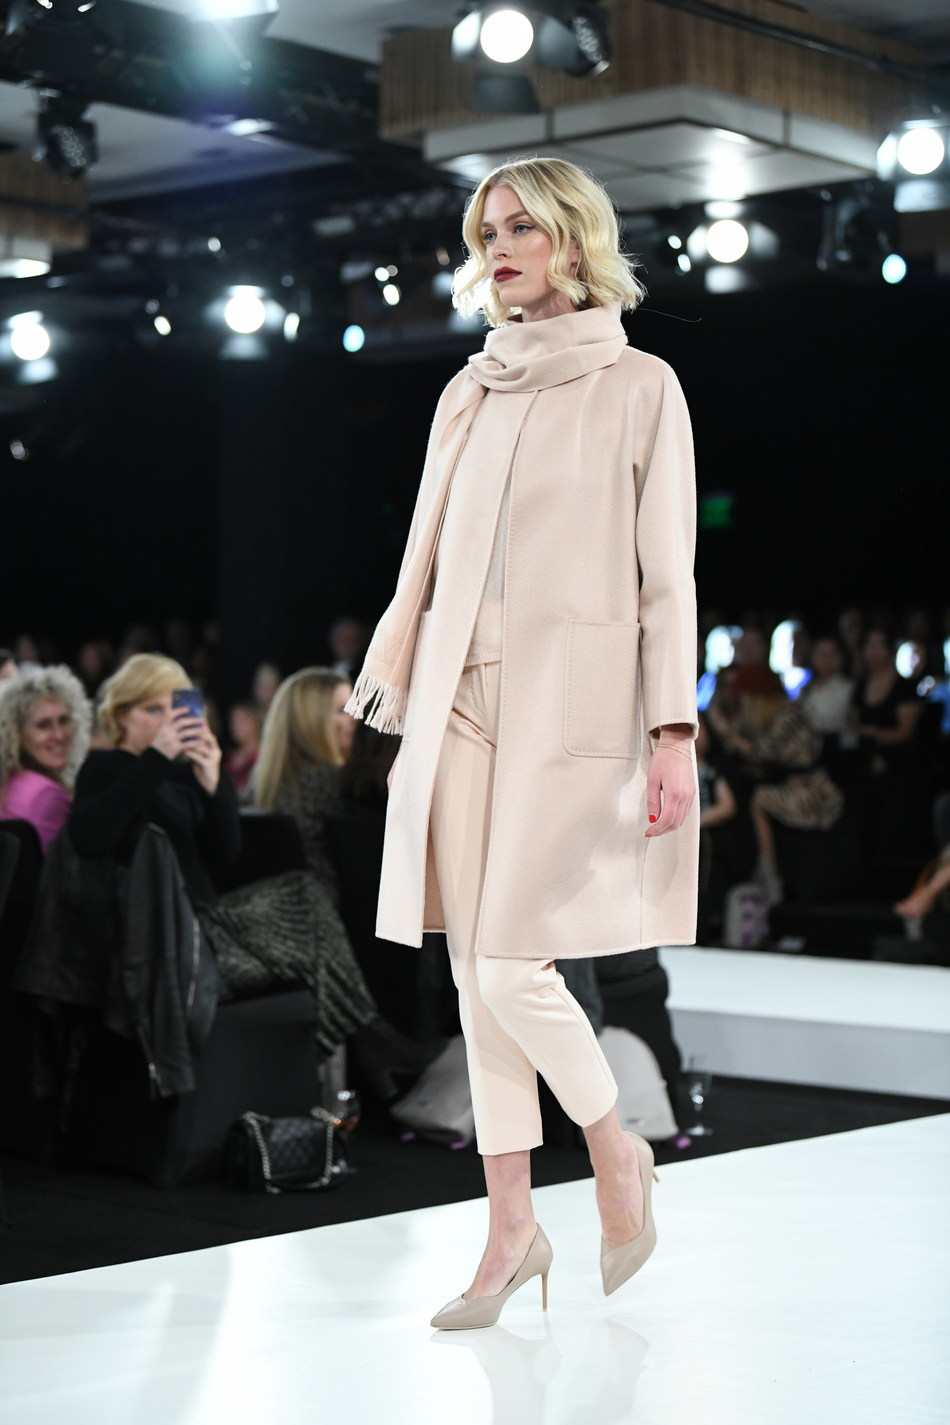 Fashion Week at The Bellevue Collection. Photo credit: HRV Media